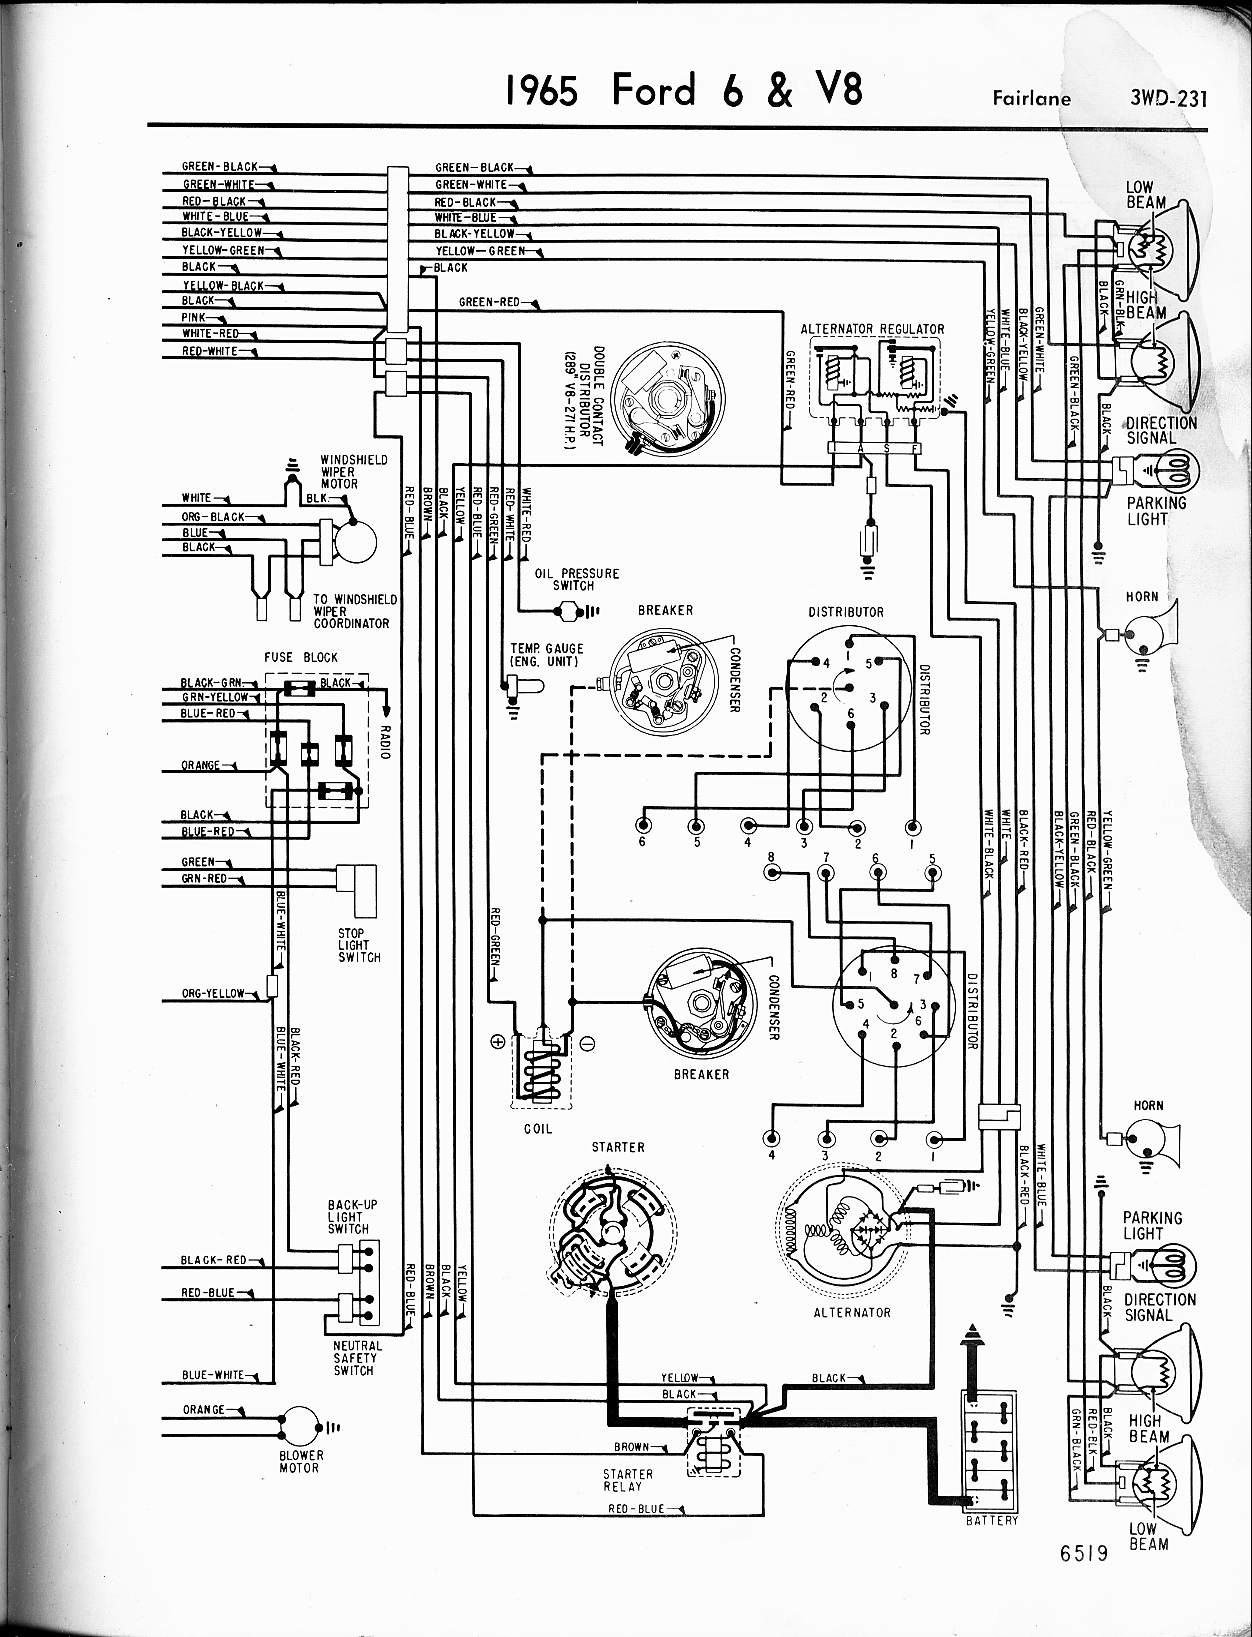 [DIAGRAM] 1967 Mustang Steering Column Wiring Diagram FULL